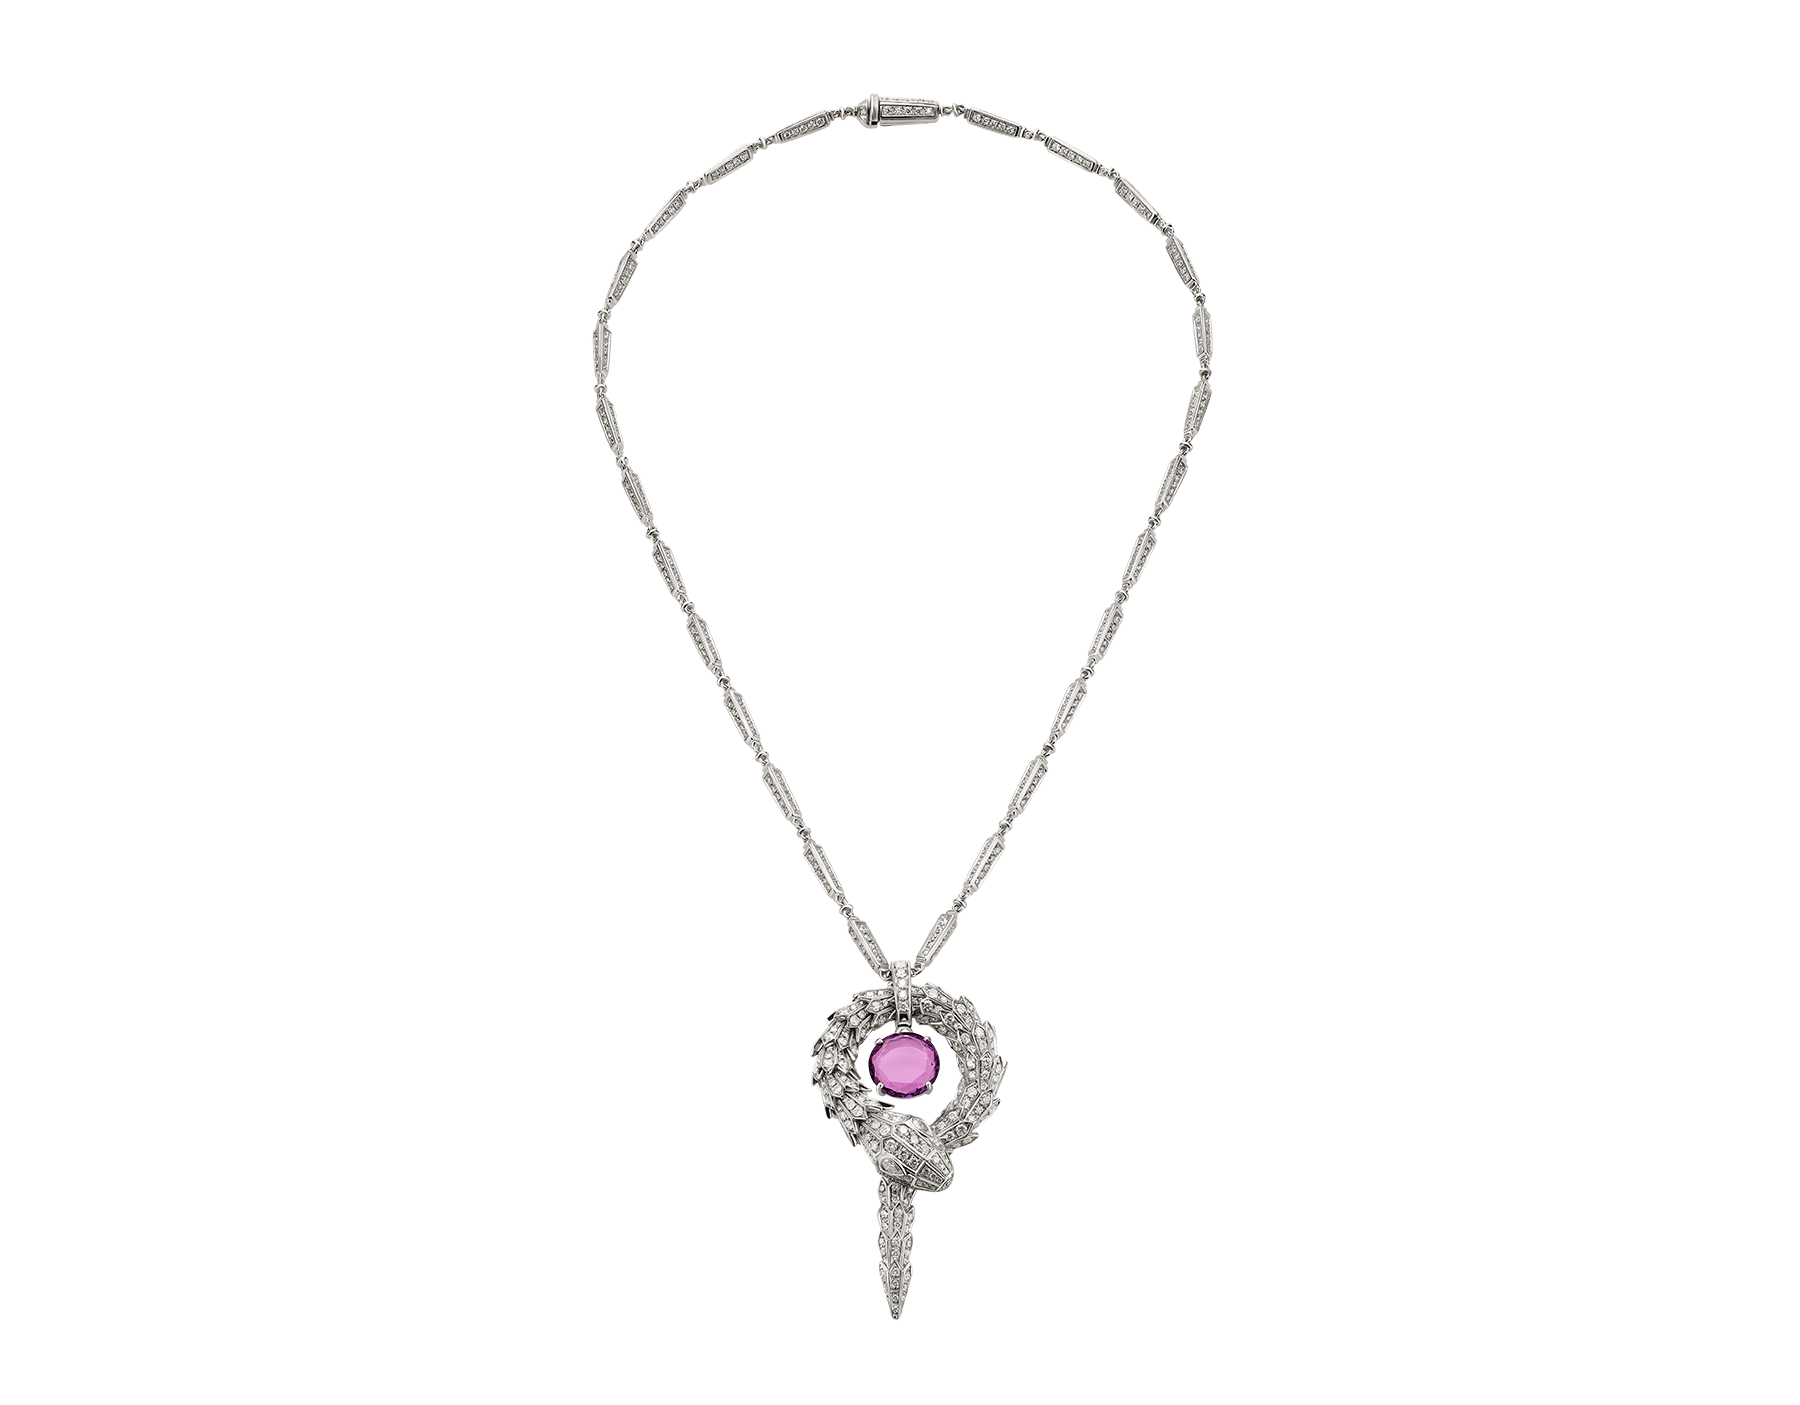 Serpenti small pendant in 18 kt white gold with amethyst and pavé diamonds. 354087 image 2